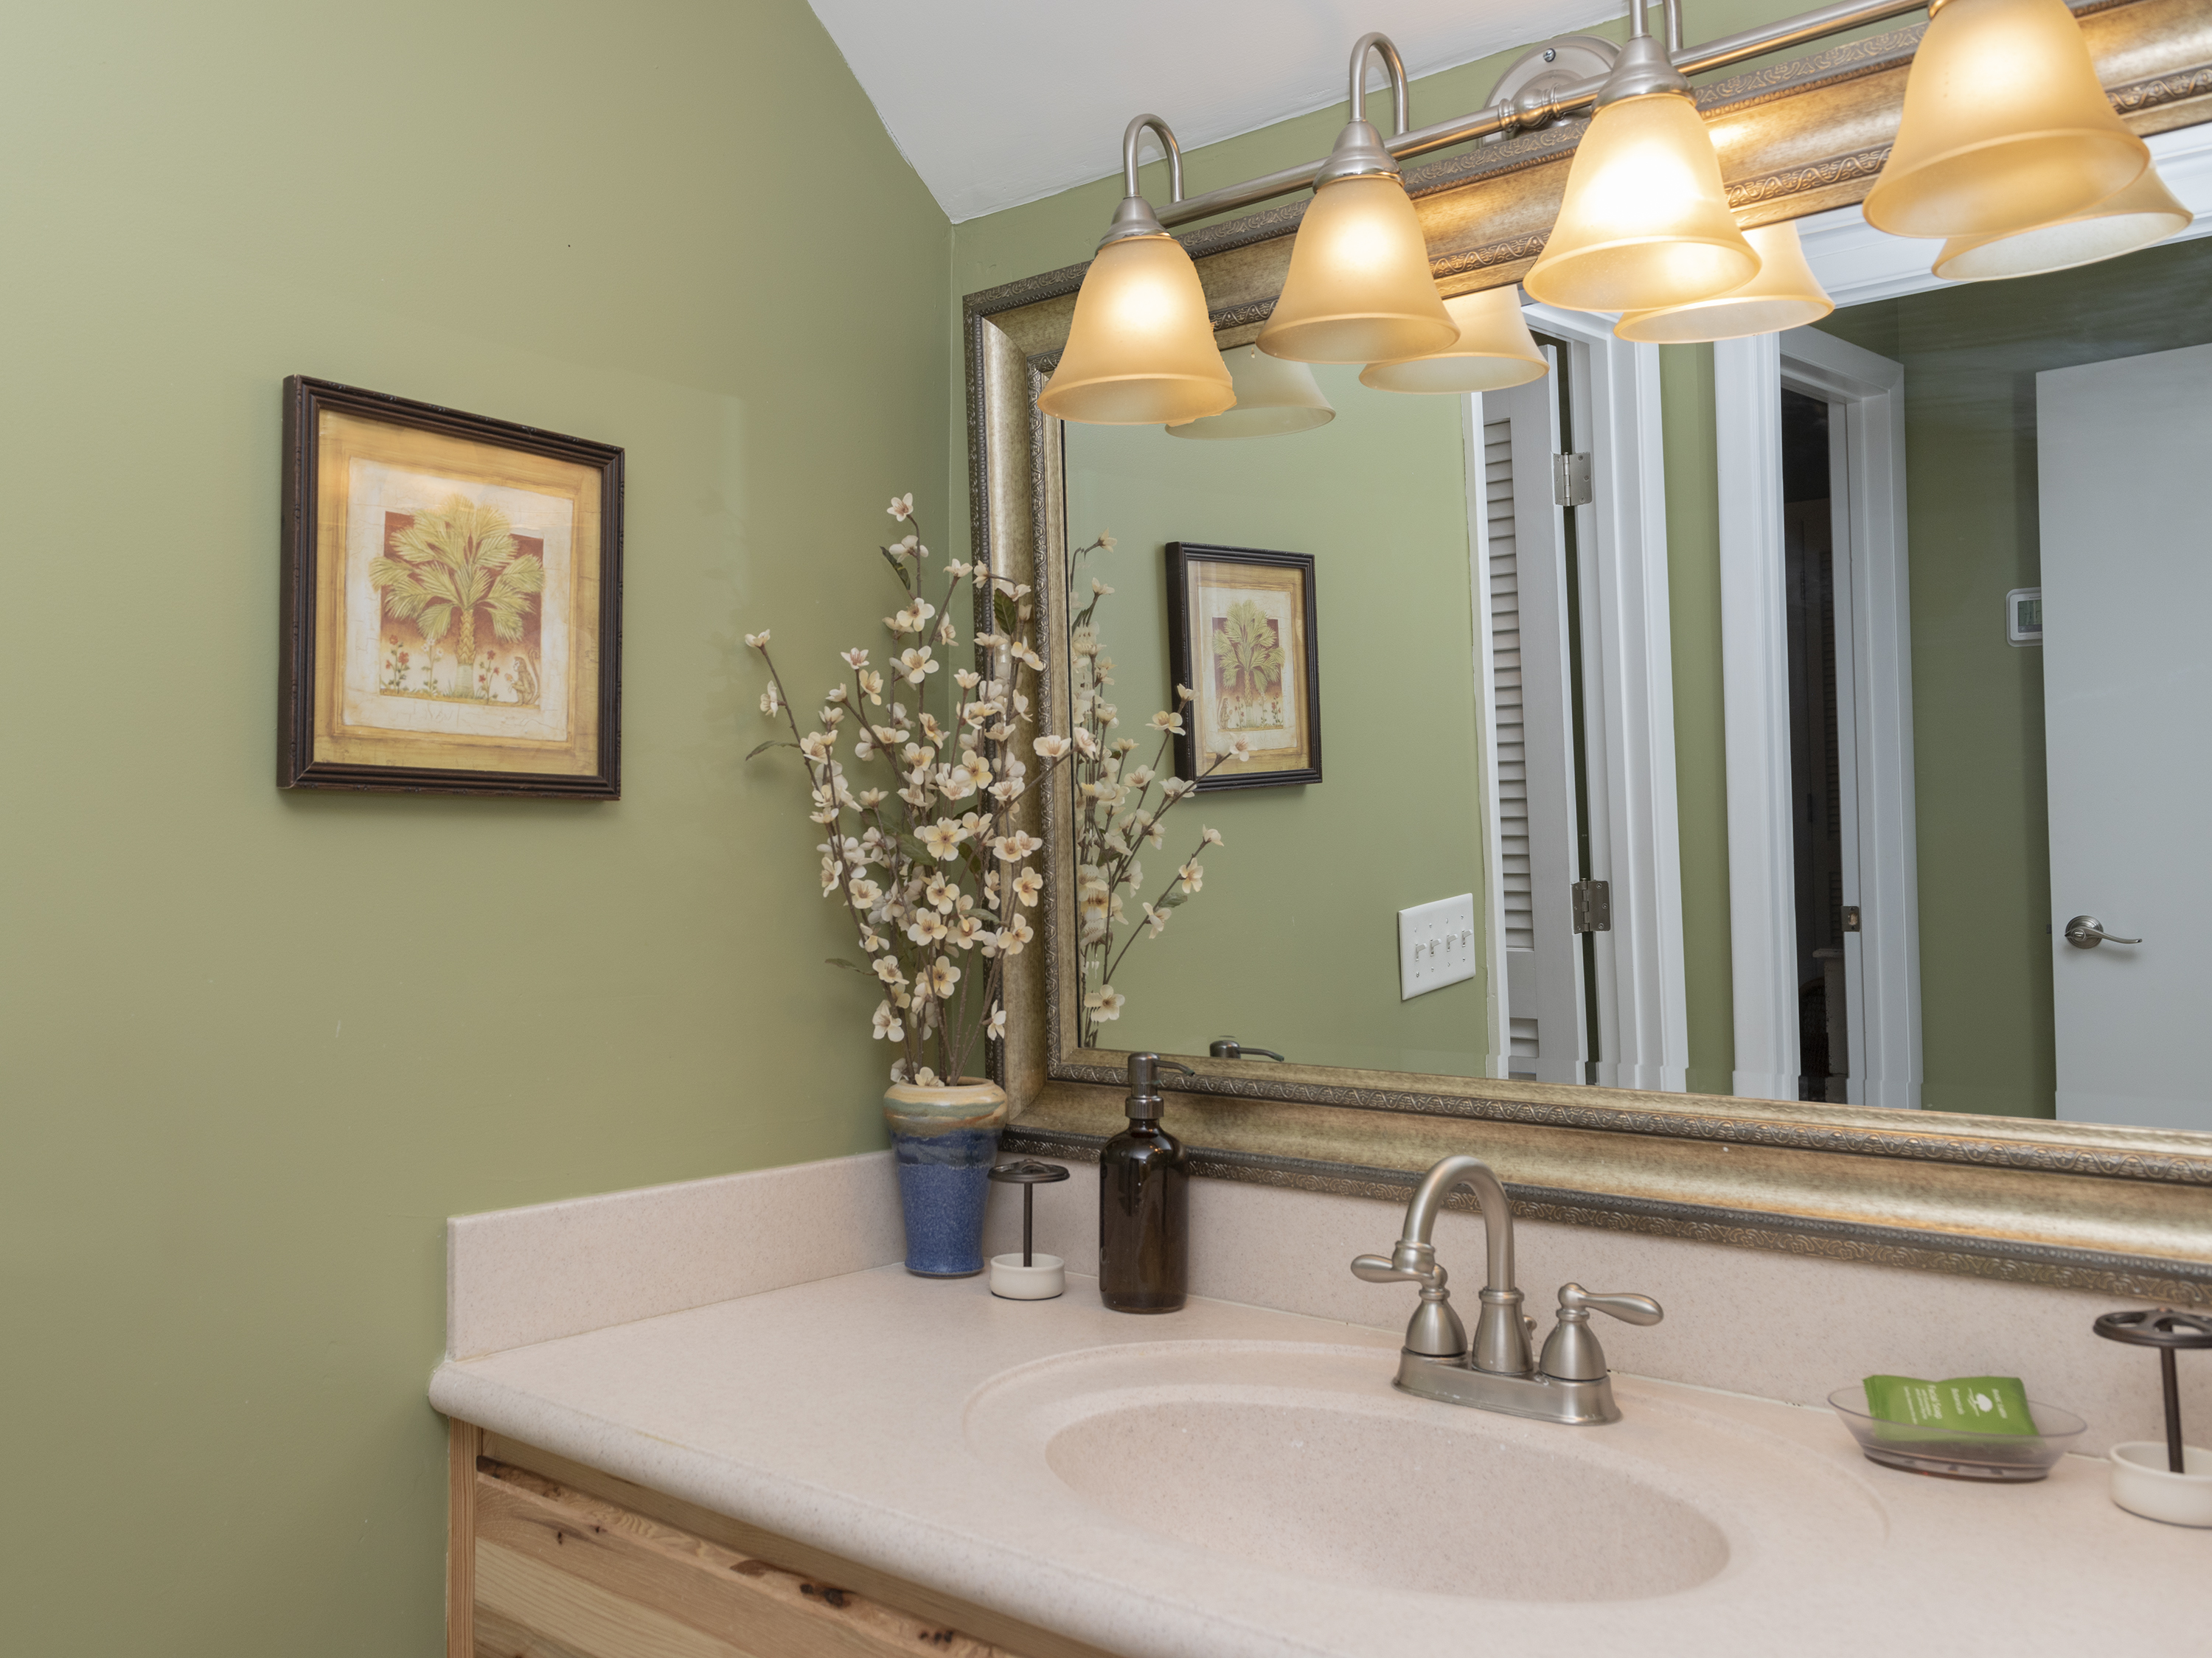 The hall bath is between the two bedrooms & has an updated cabinet and vanity.